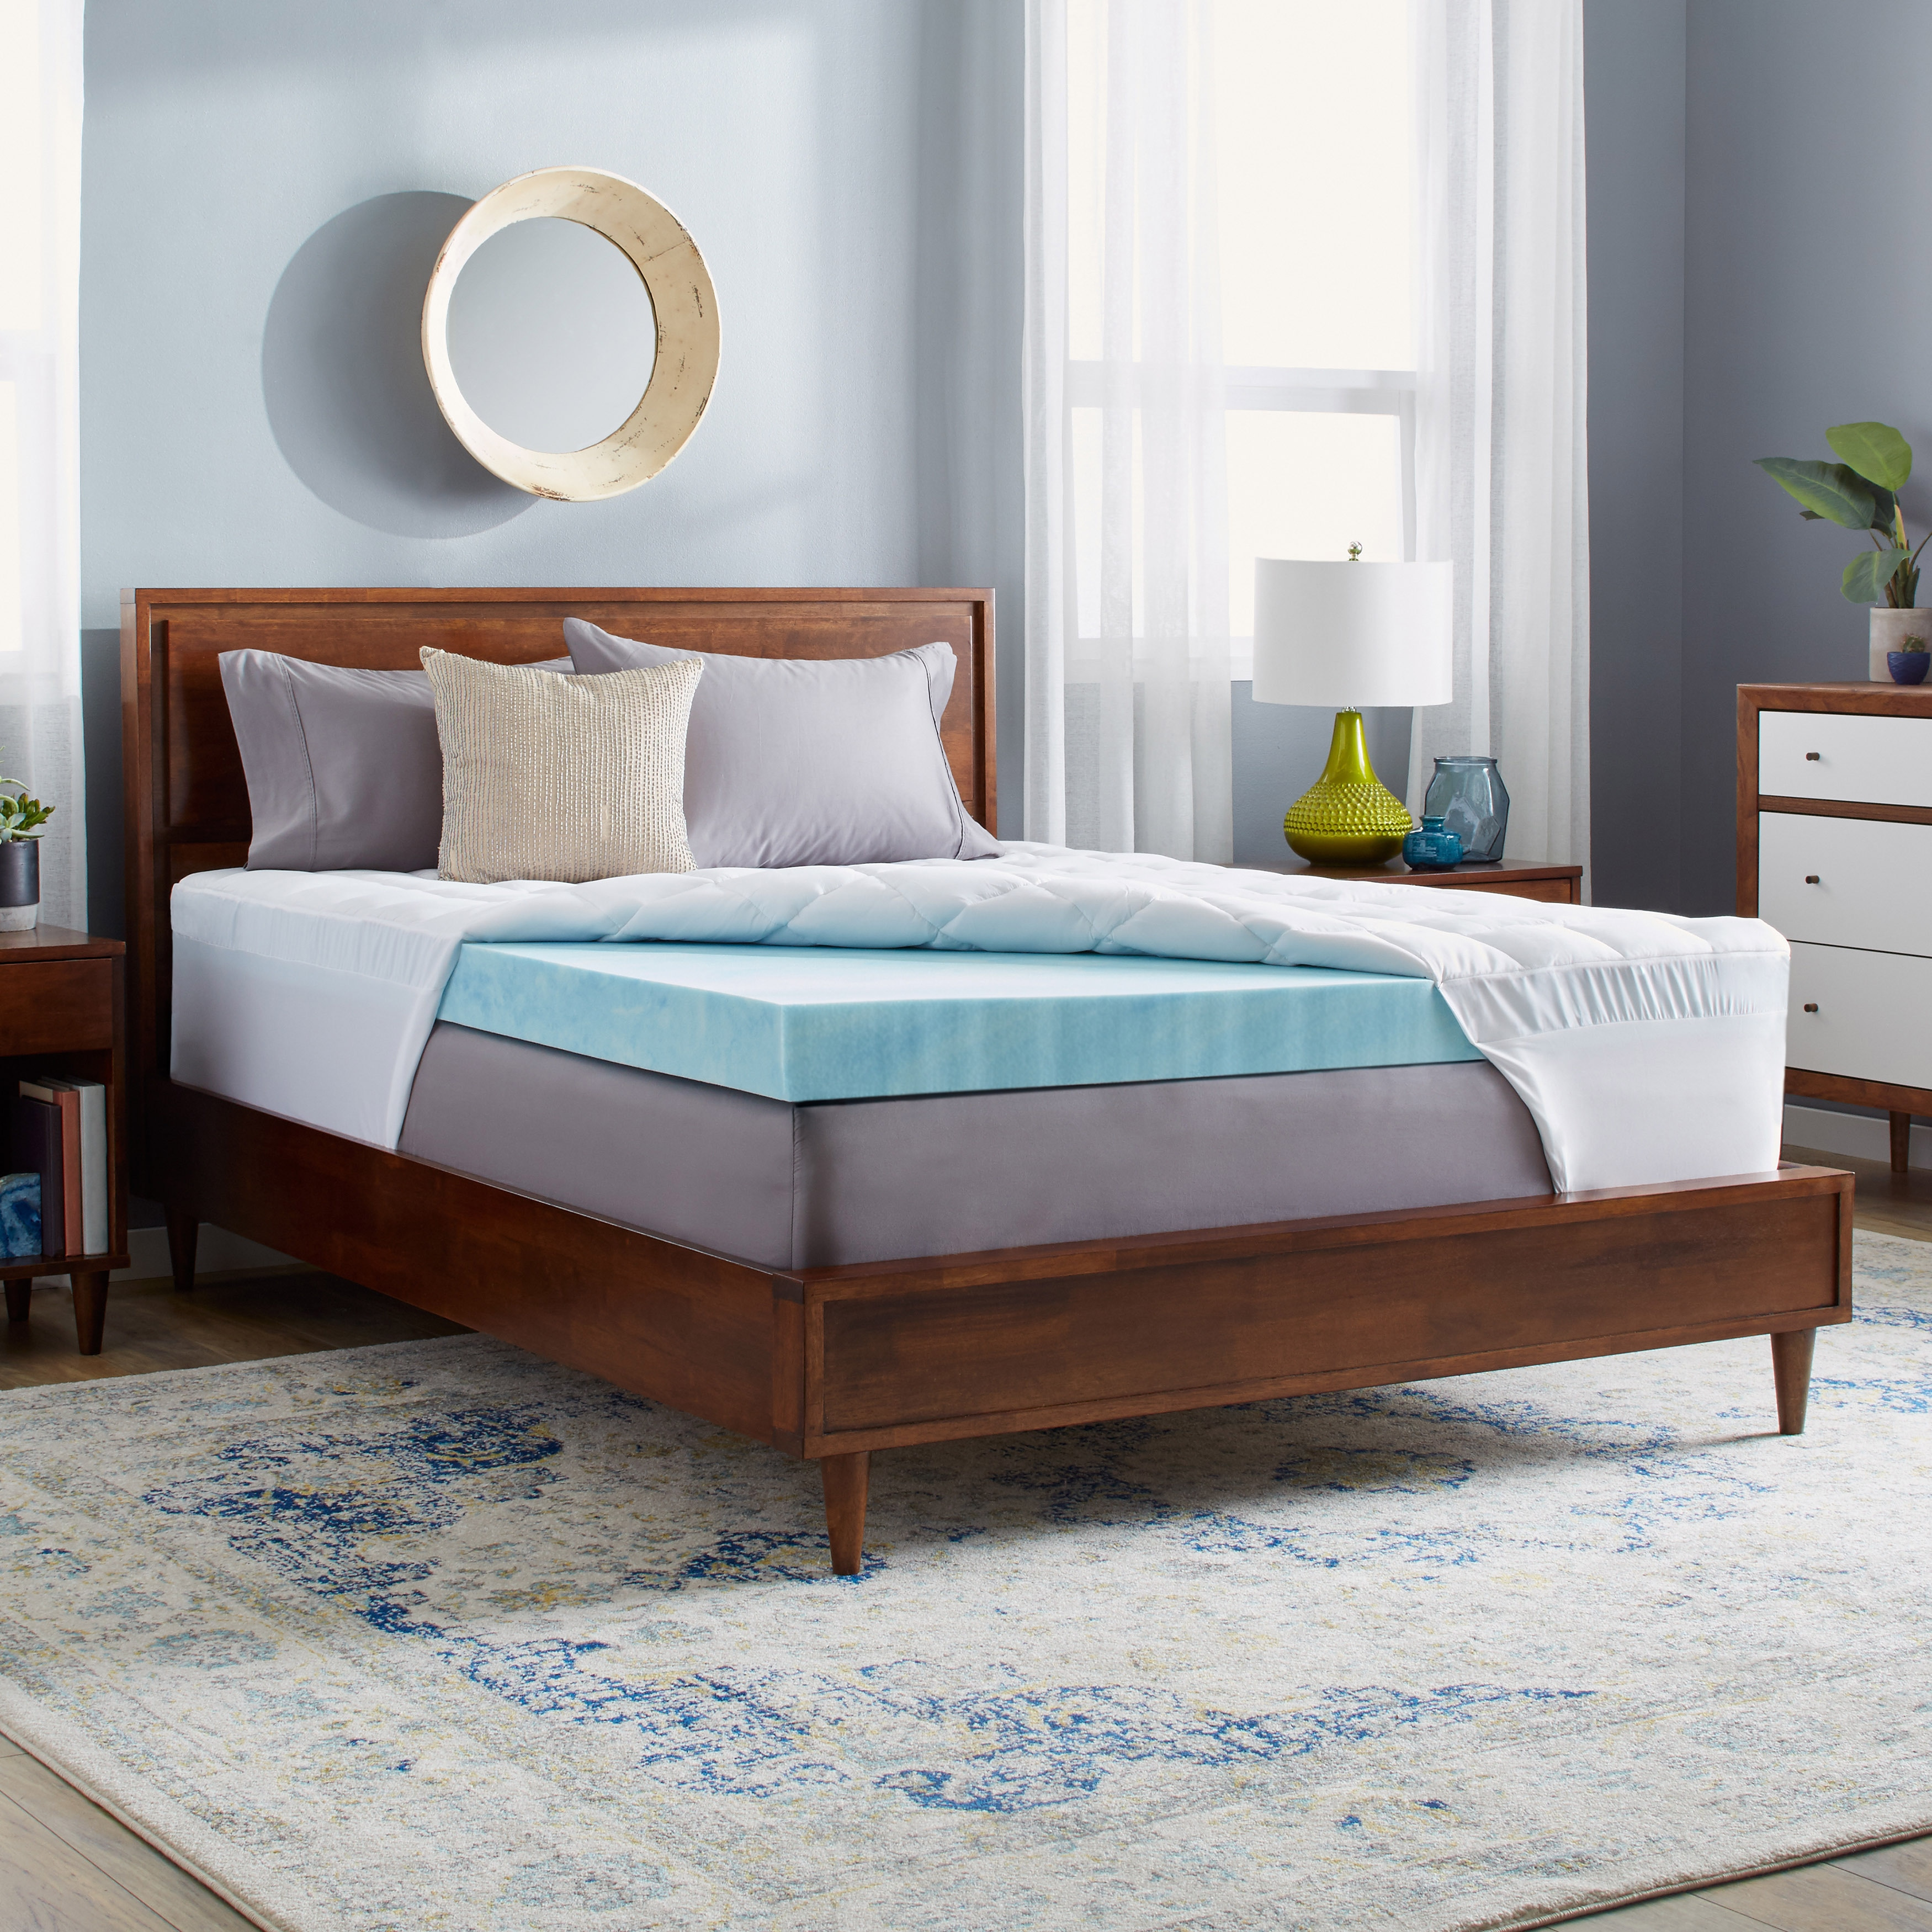 people a heavy reviews pexels for top photo what june rated beds person best mattress good makes